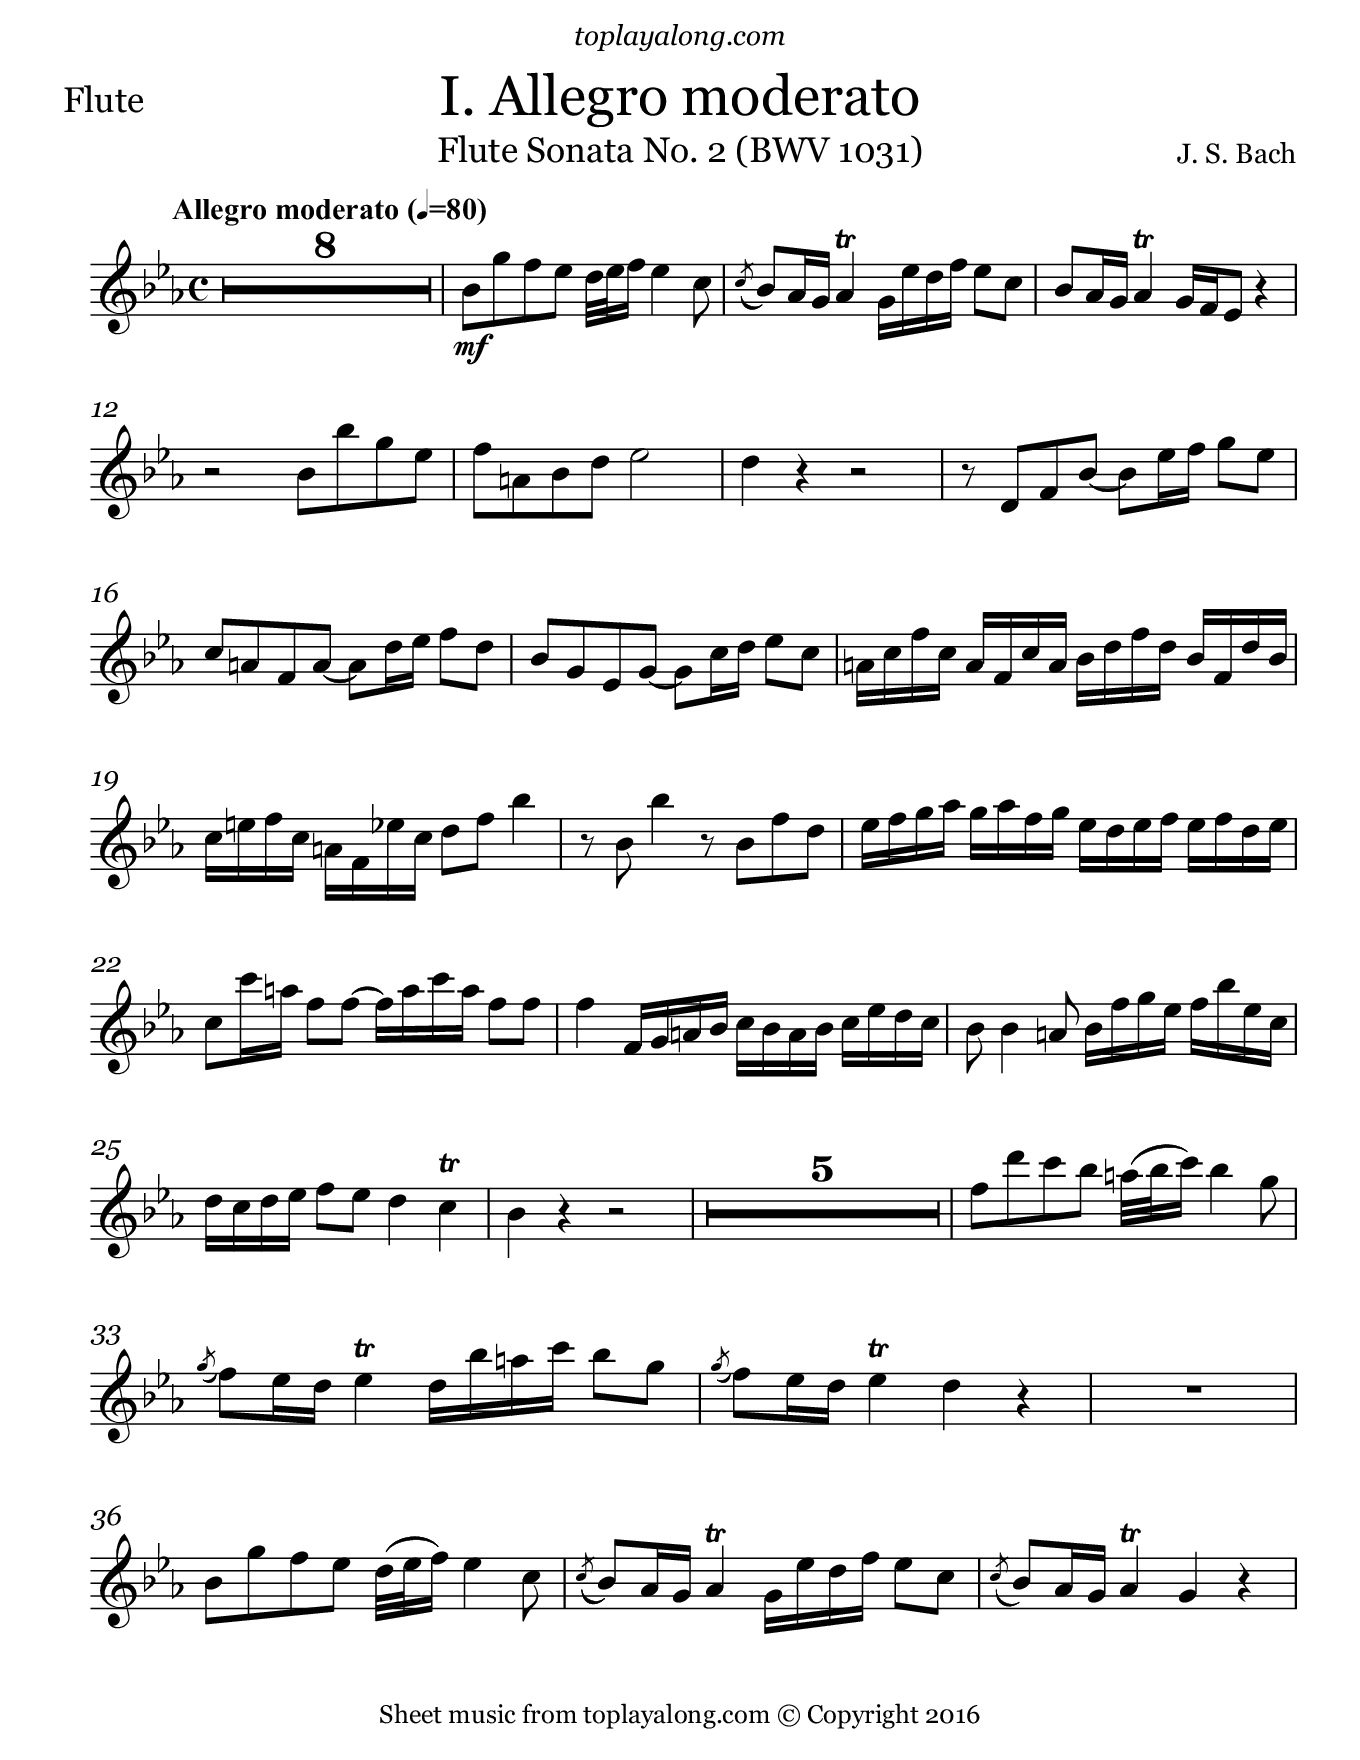 Flute Sonata BWV 1031 (I. Allegro) by J. S. Bach. Sheet music for Flute, page 1.